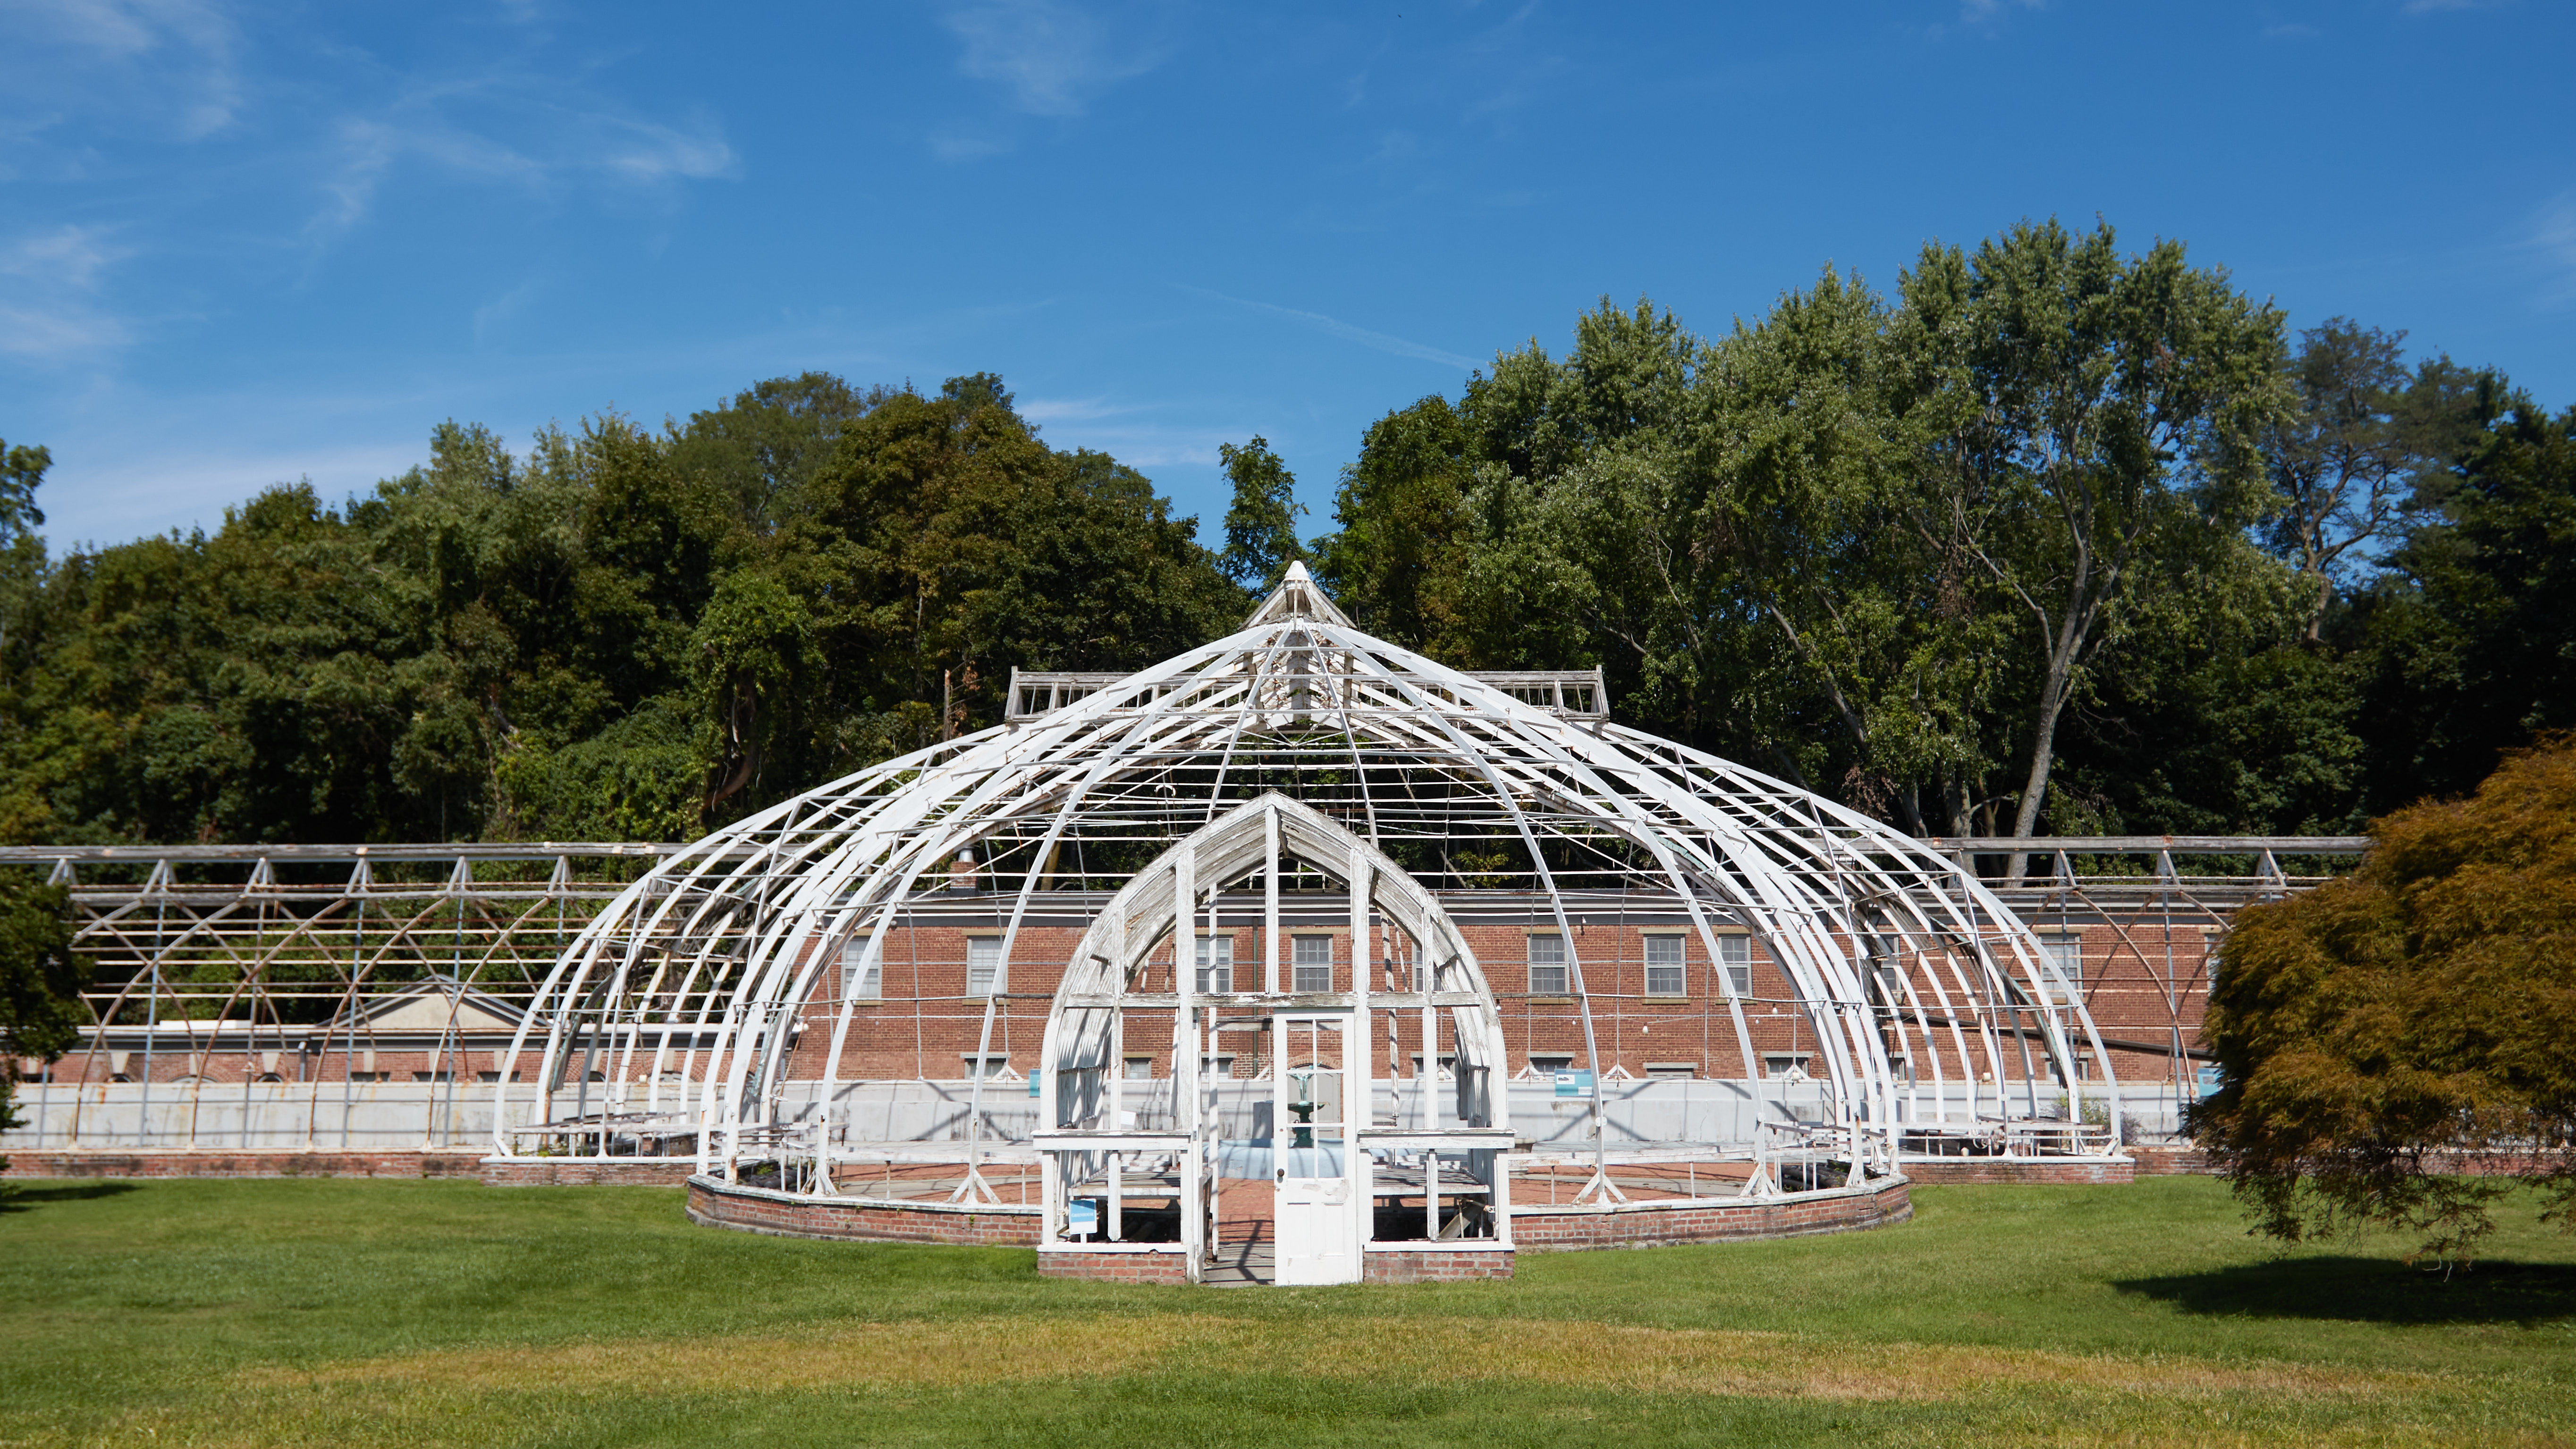 Greenhouse conservatory, now just a metal wire structure.